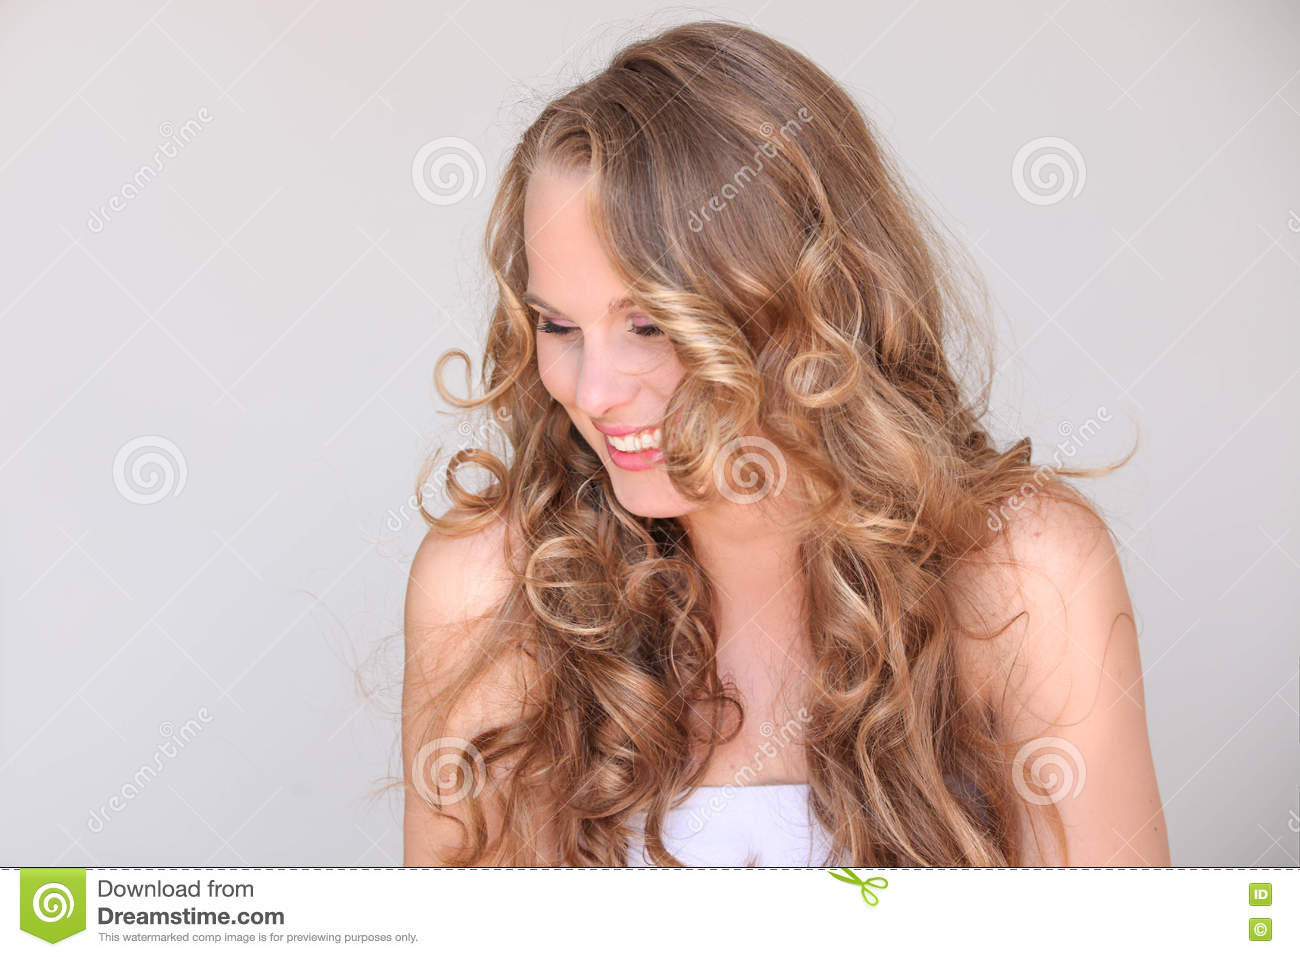 Woman, blond curly hair beautiful skin